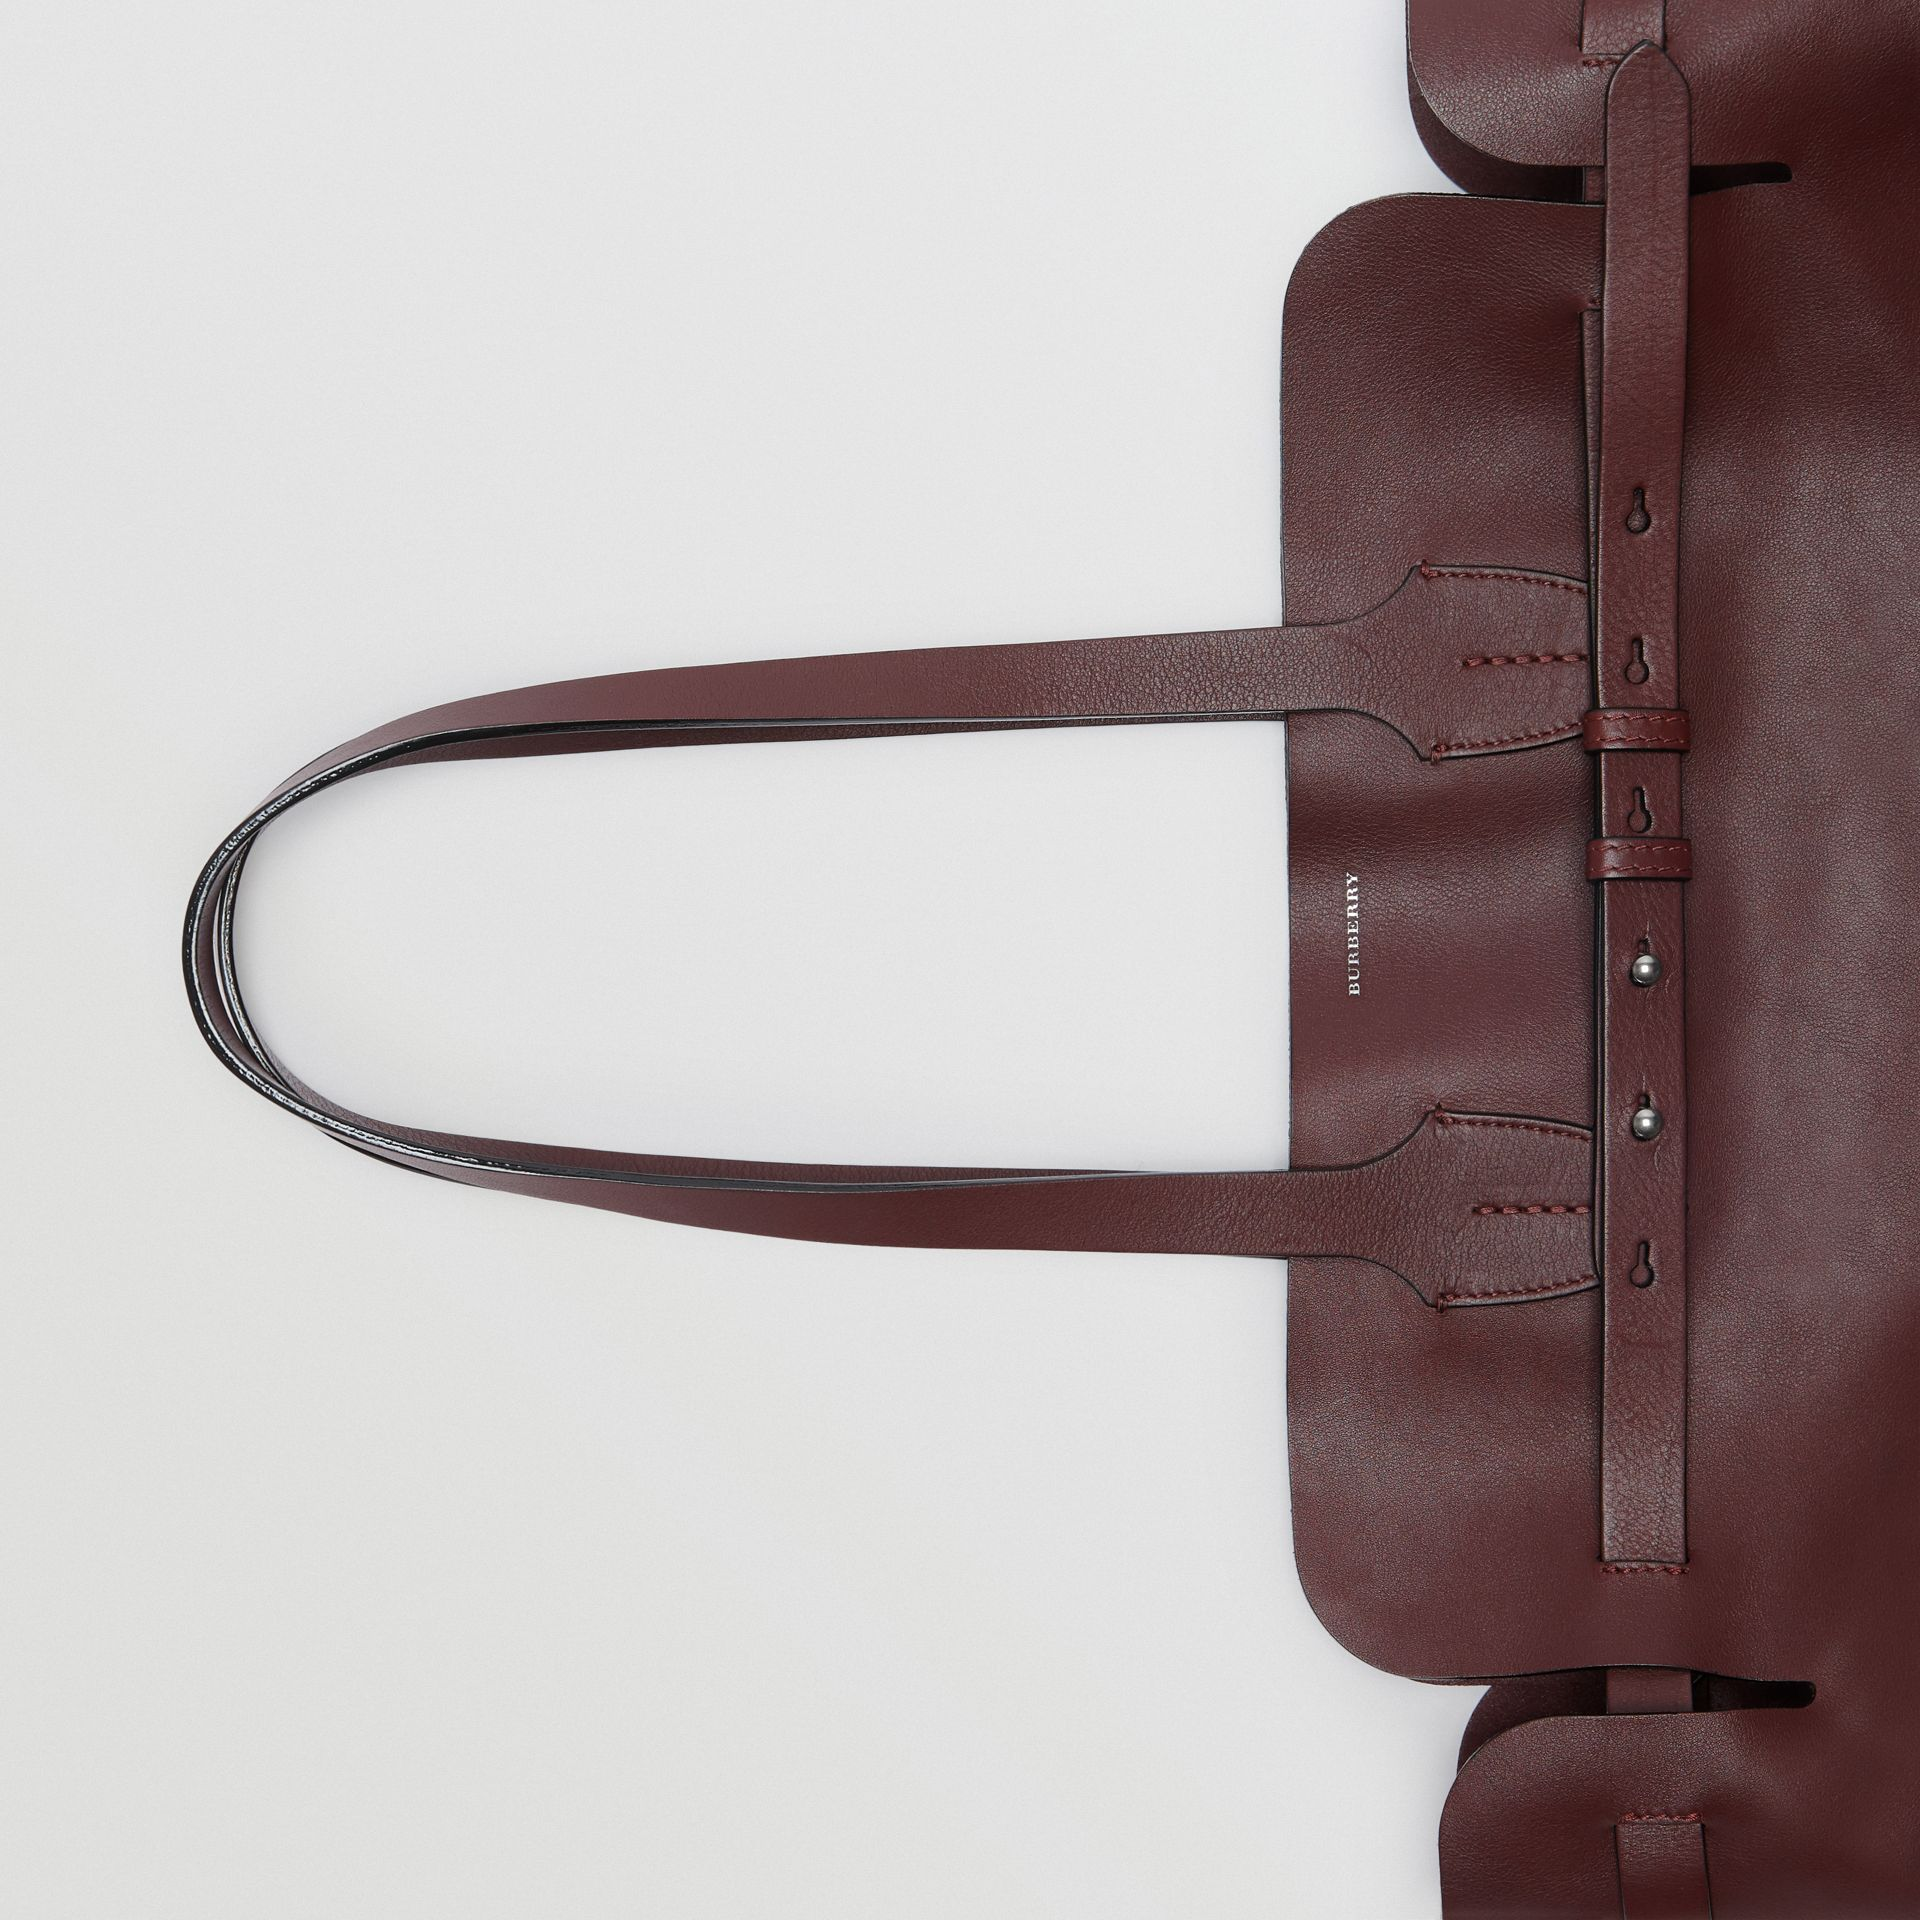 Sac The Belt moyen en cuir doux (Bordeaux Intense) - Femme | Burberry - photo de la galerie 1